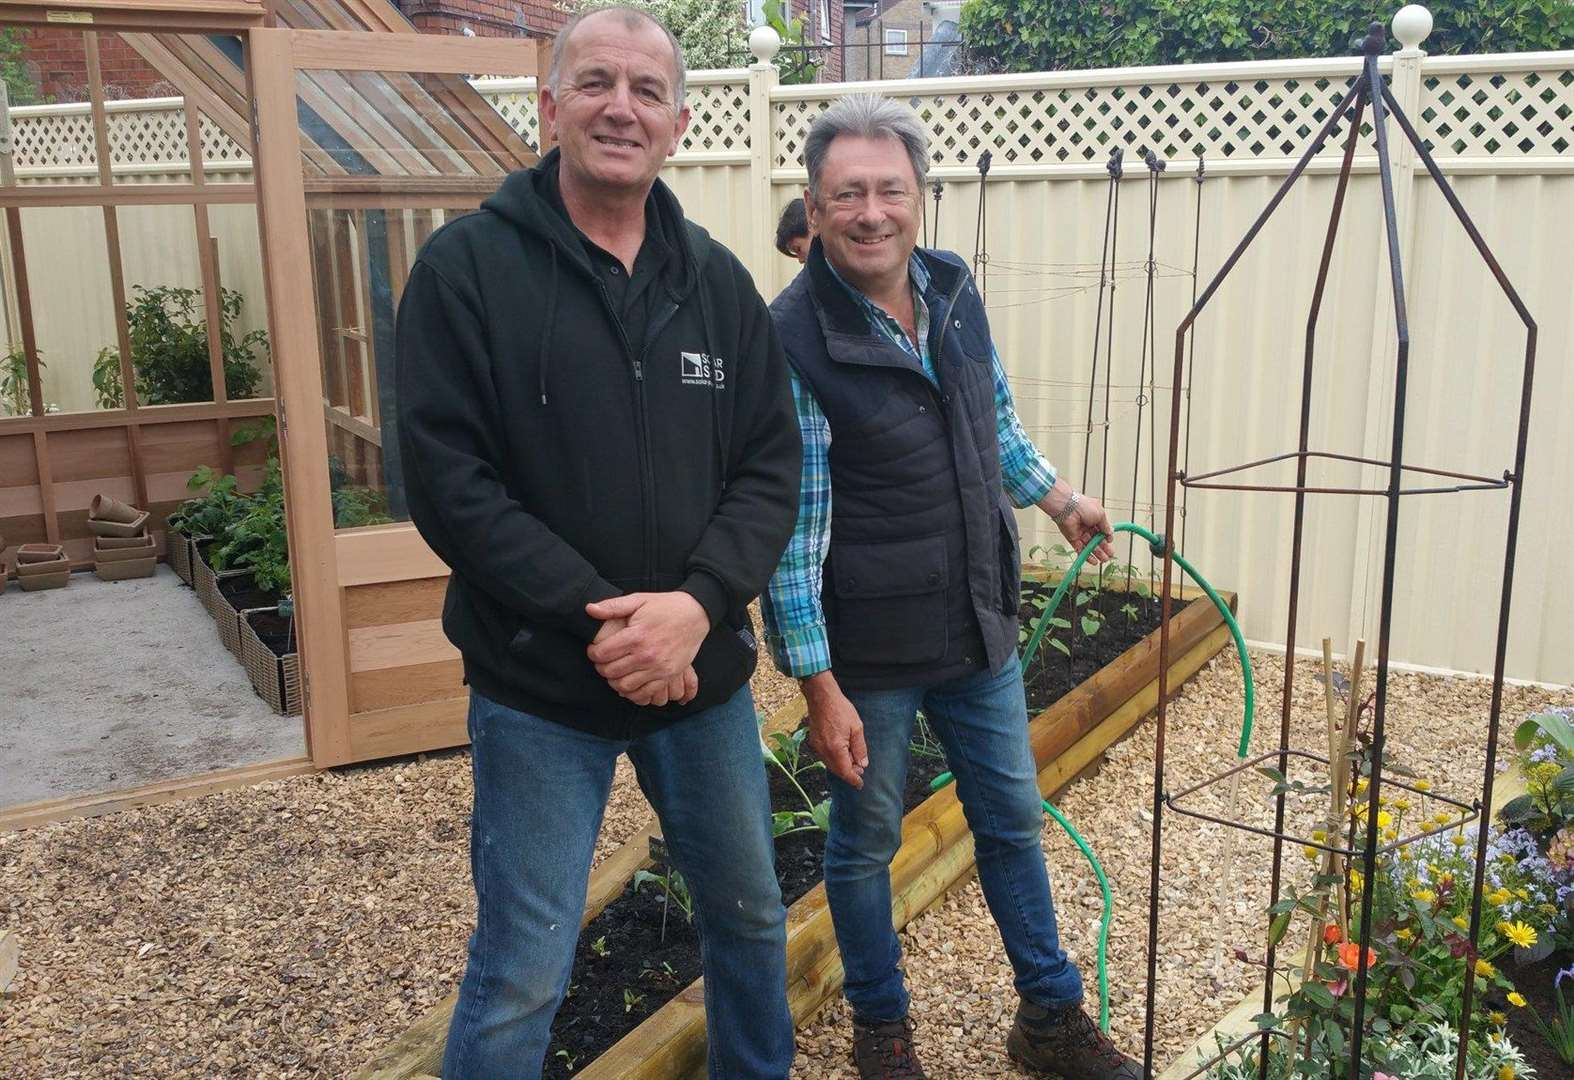 Magdalen entrepreneur teams up with celebrity for gardening show